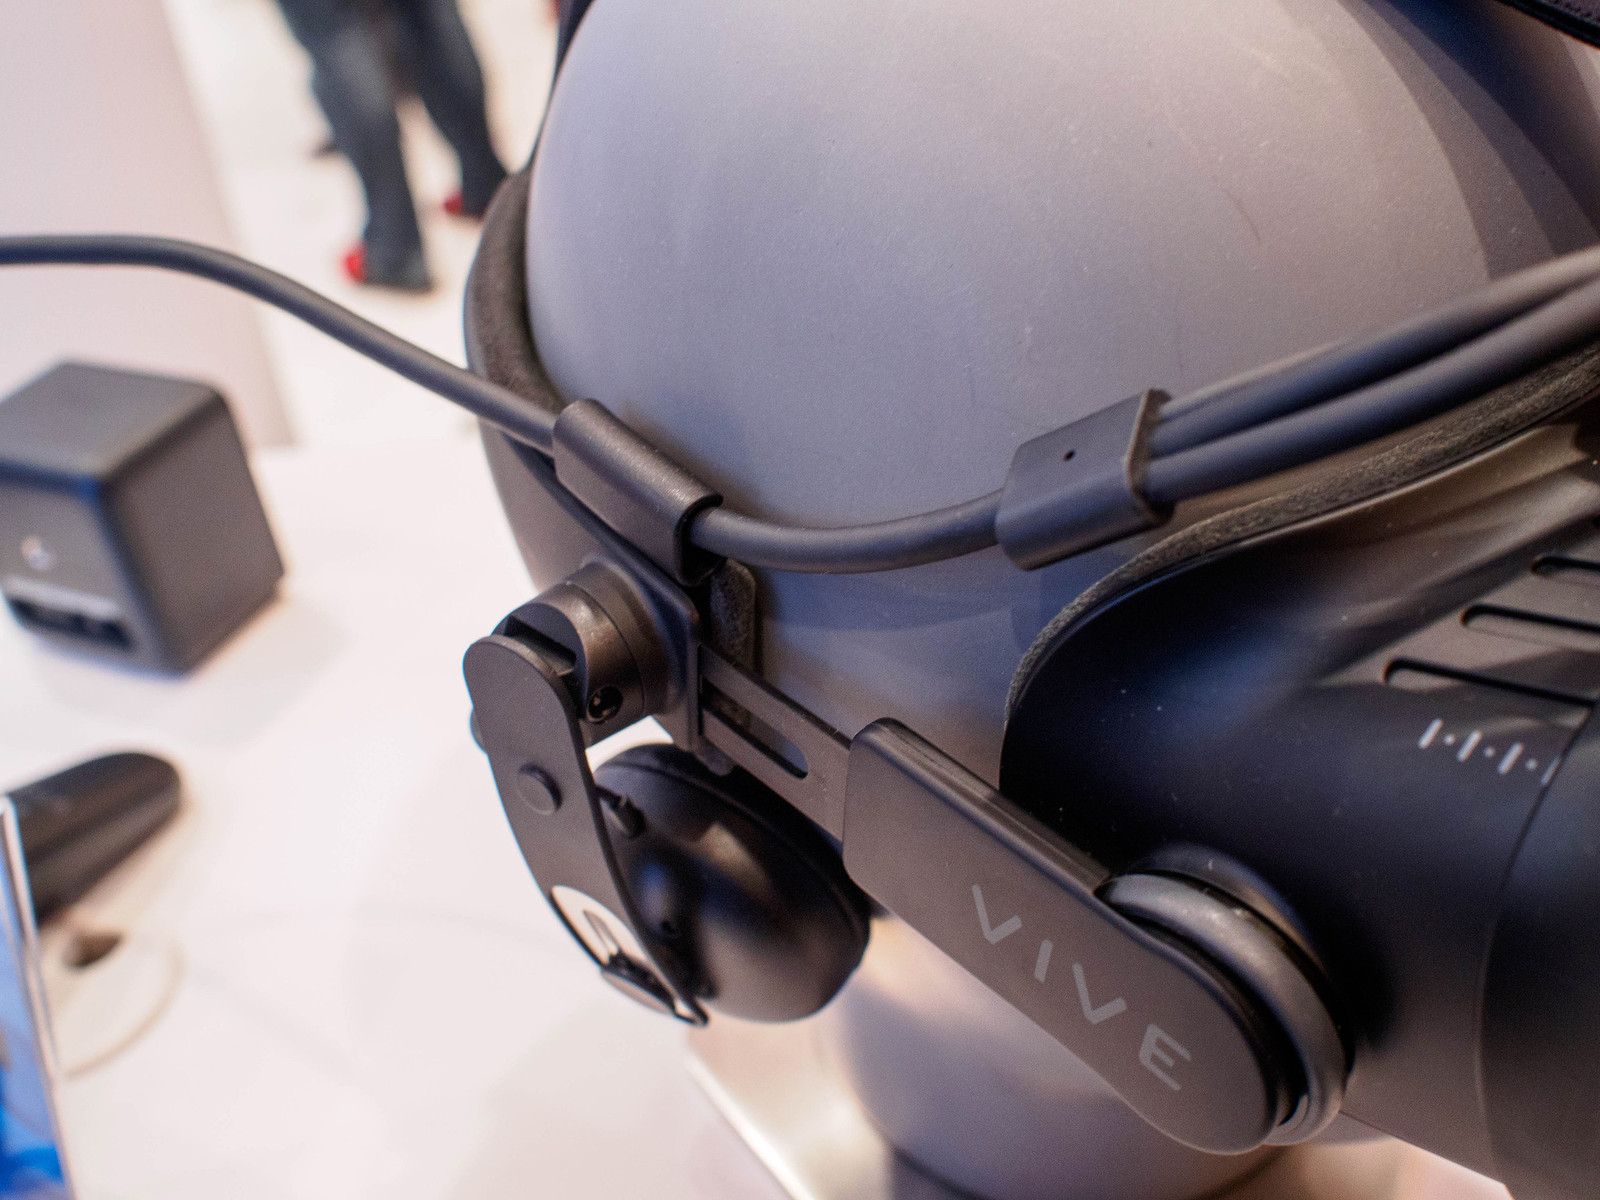 How to get the new HTC Vive 3-in-1 cable